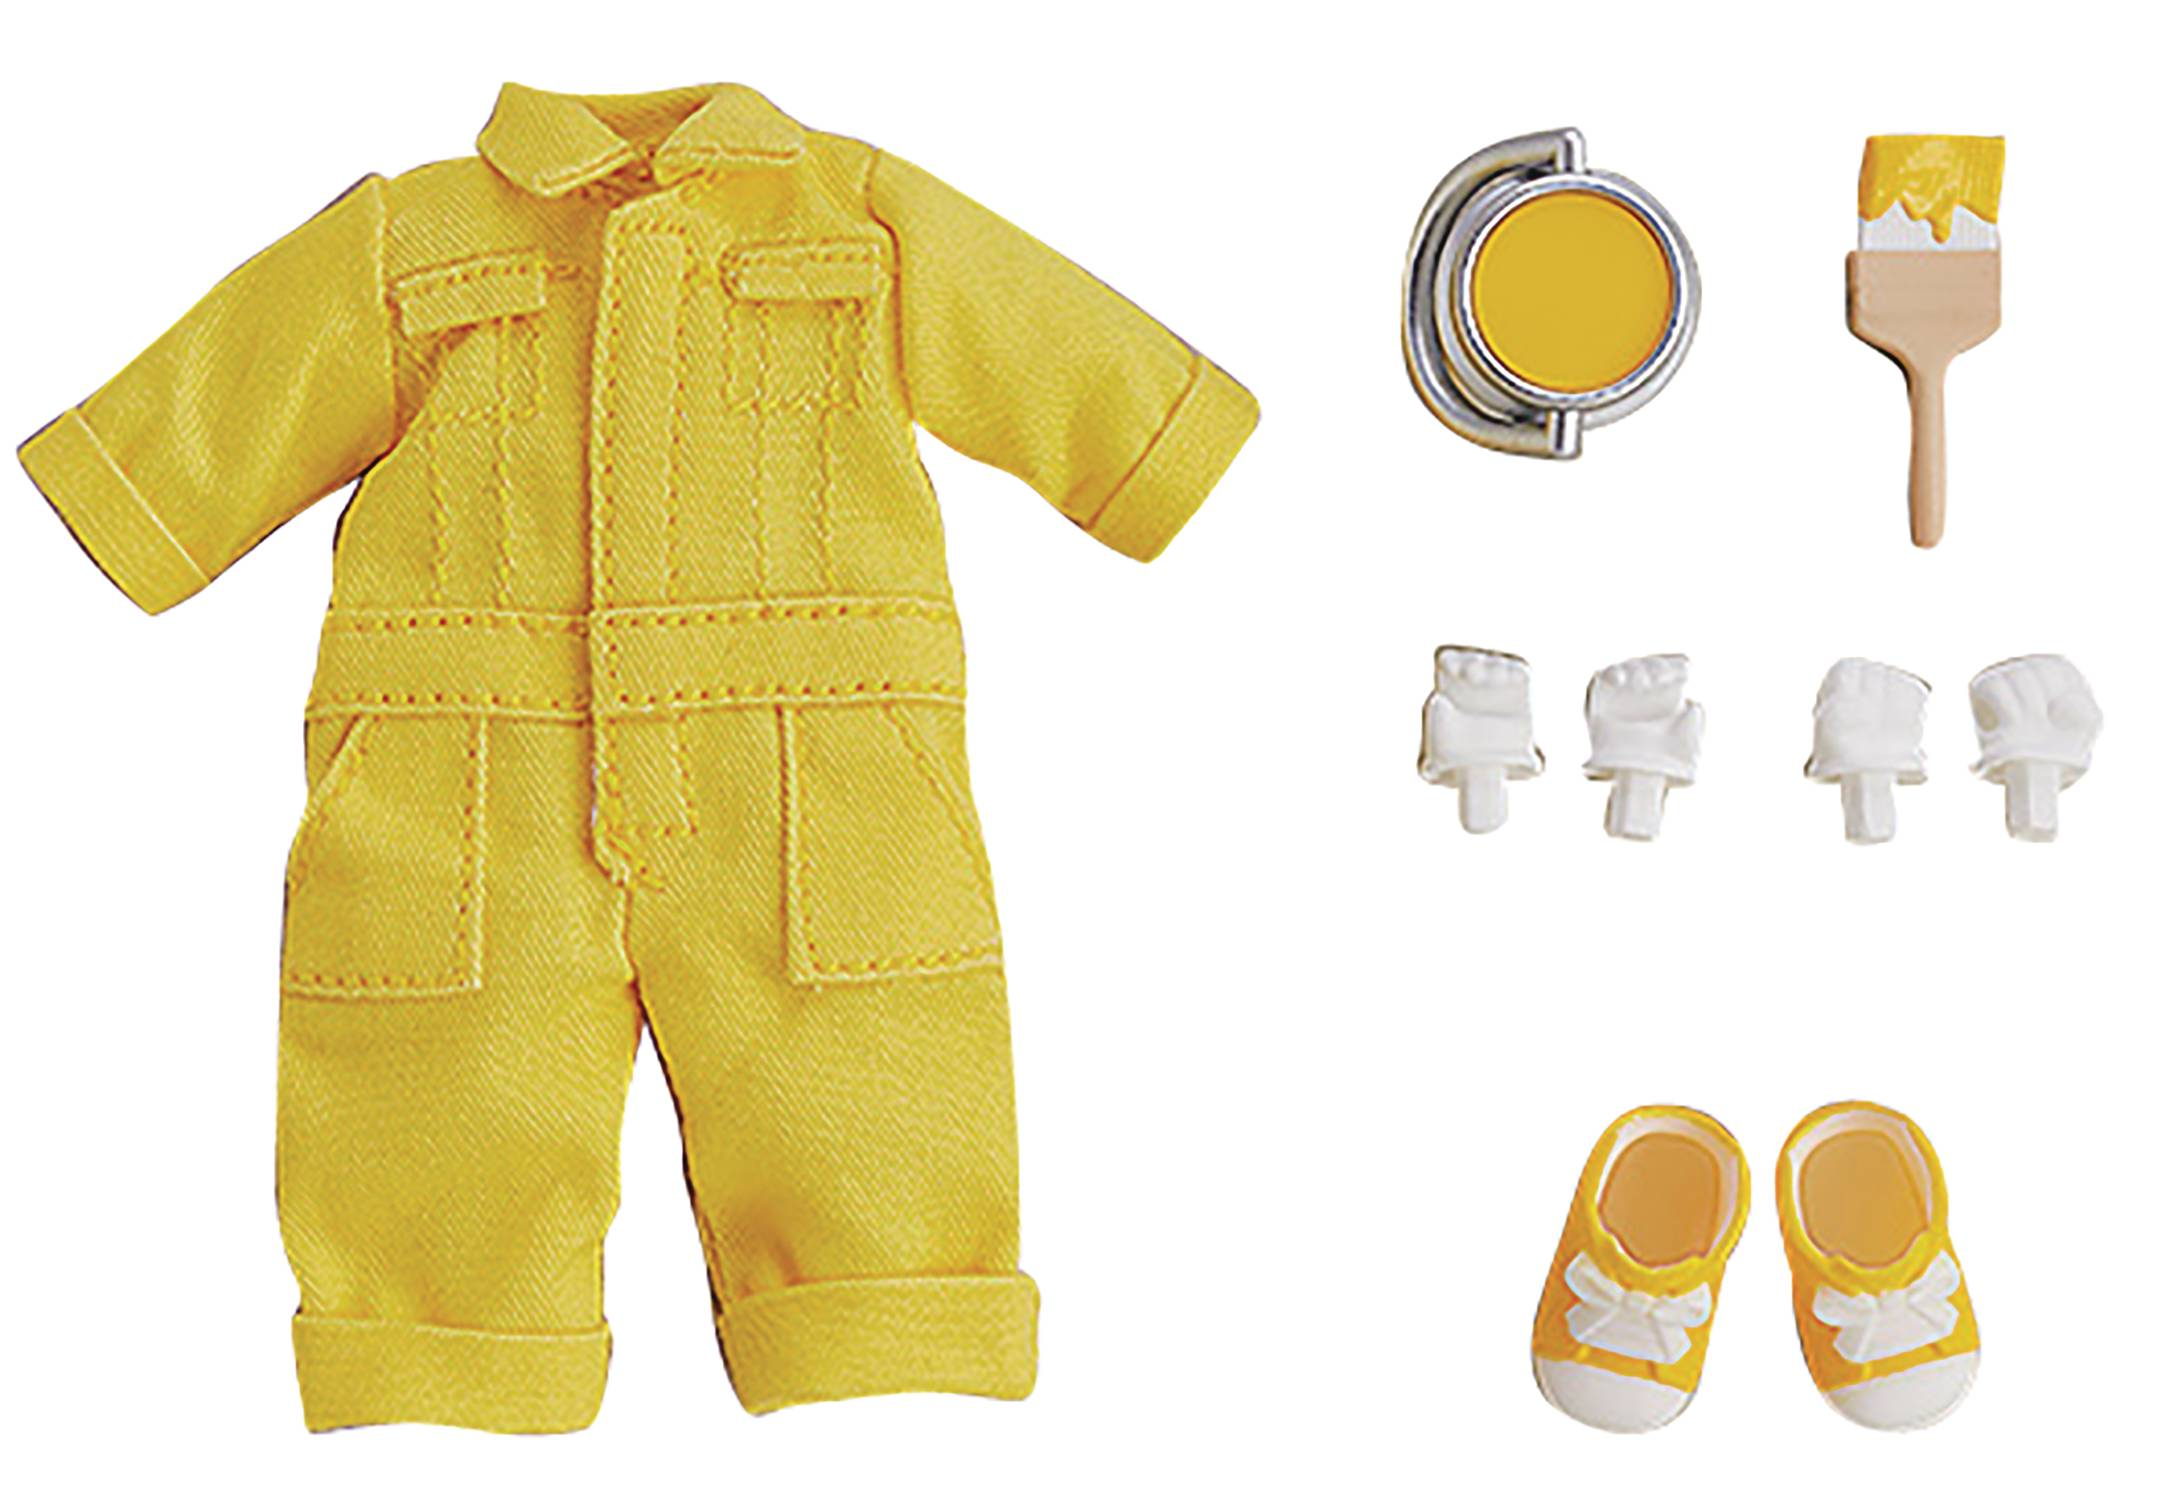 NENDOROID DOLL OUTFIT SET COLORFUL OVERALLS YELLOW VER